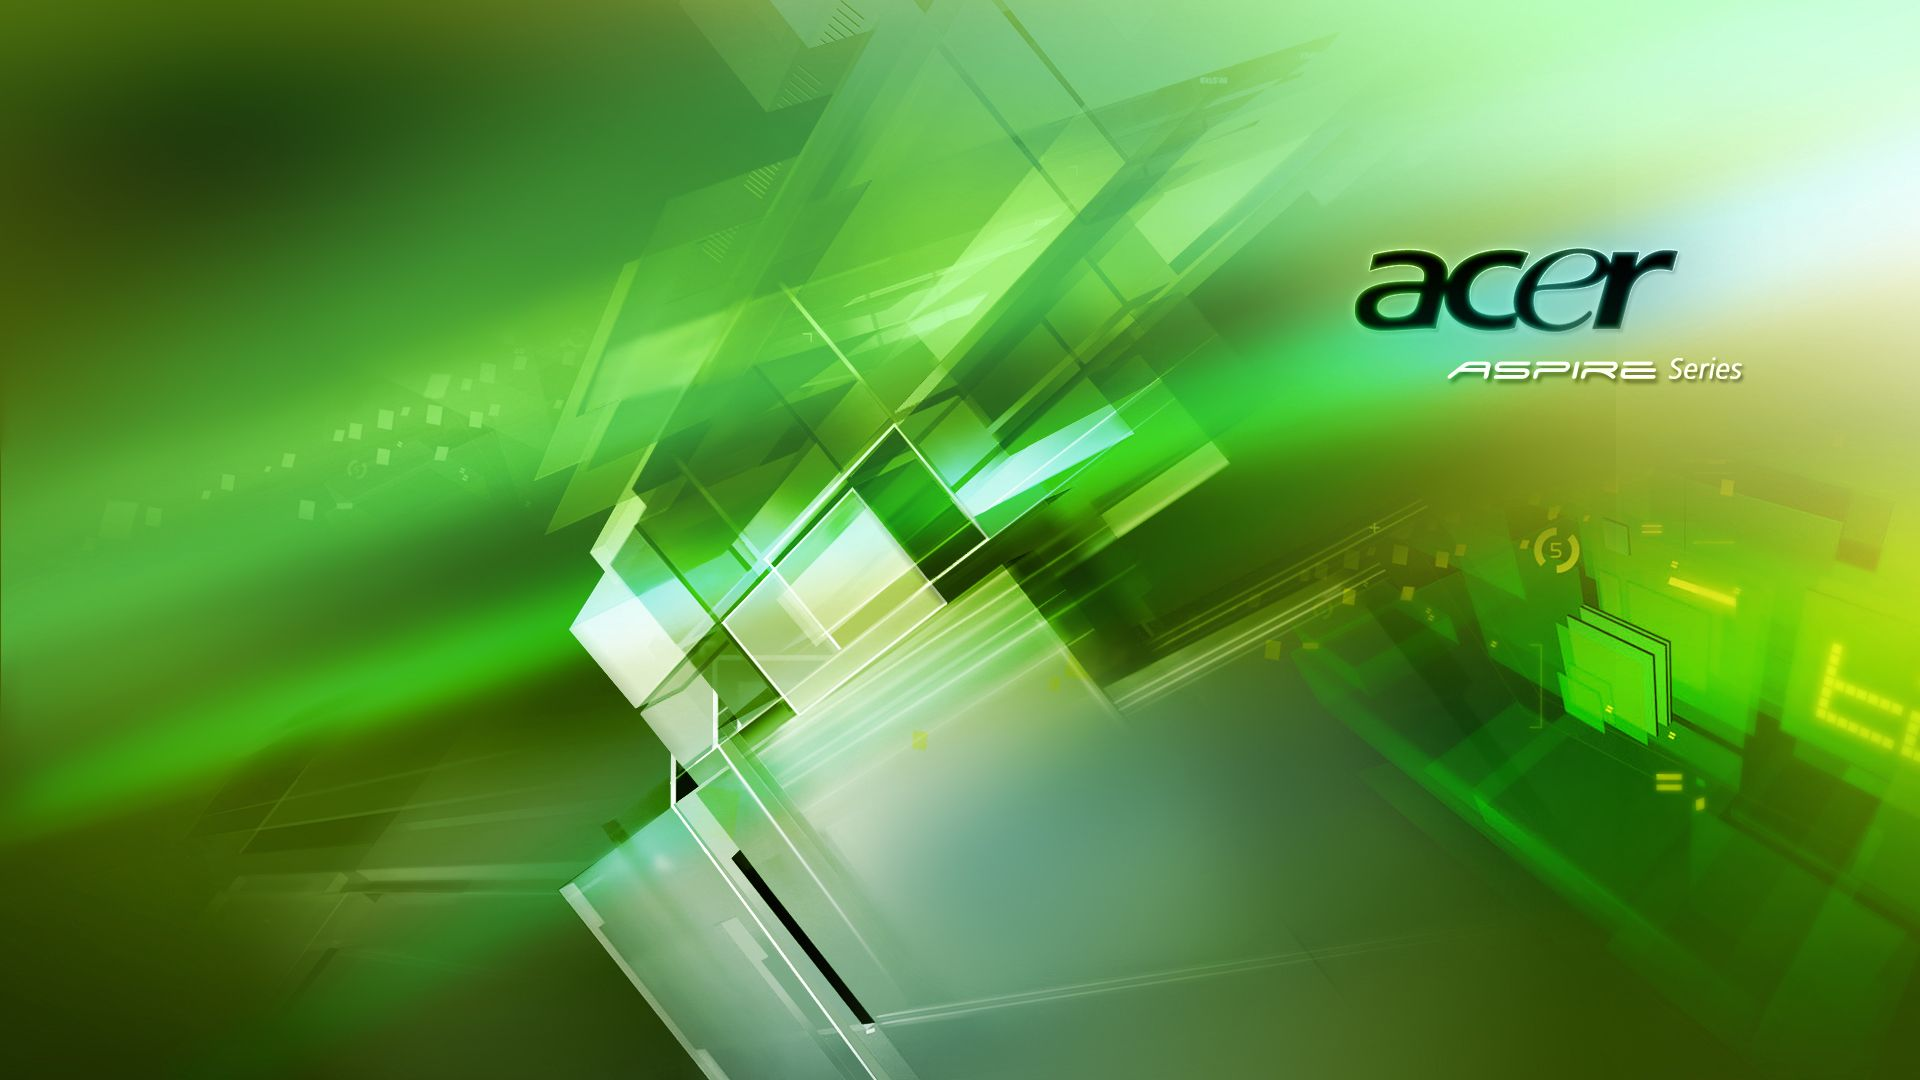 Acer free background